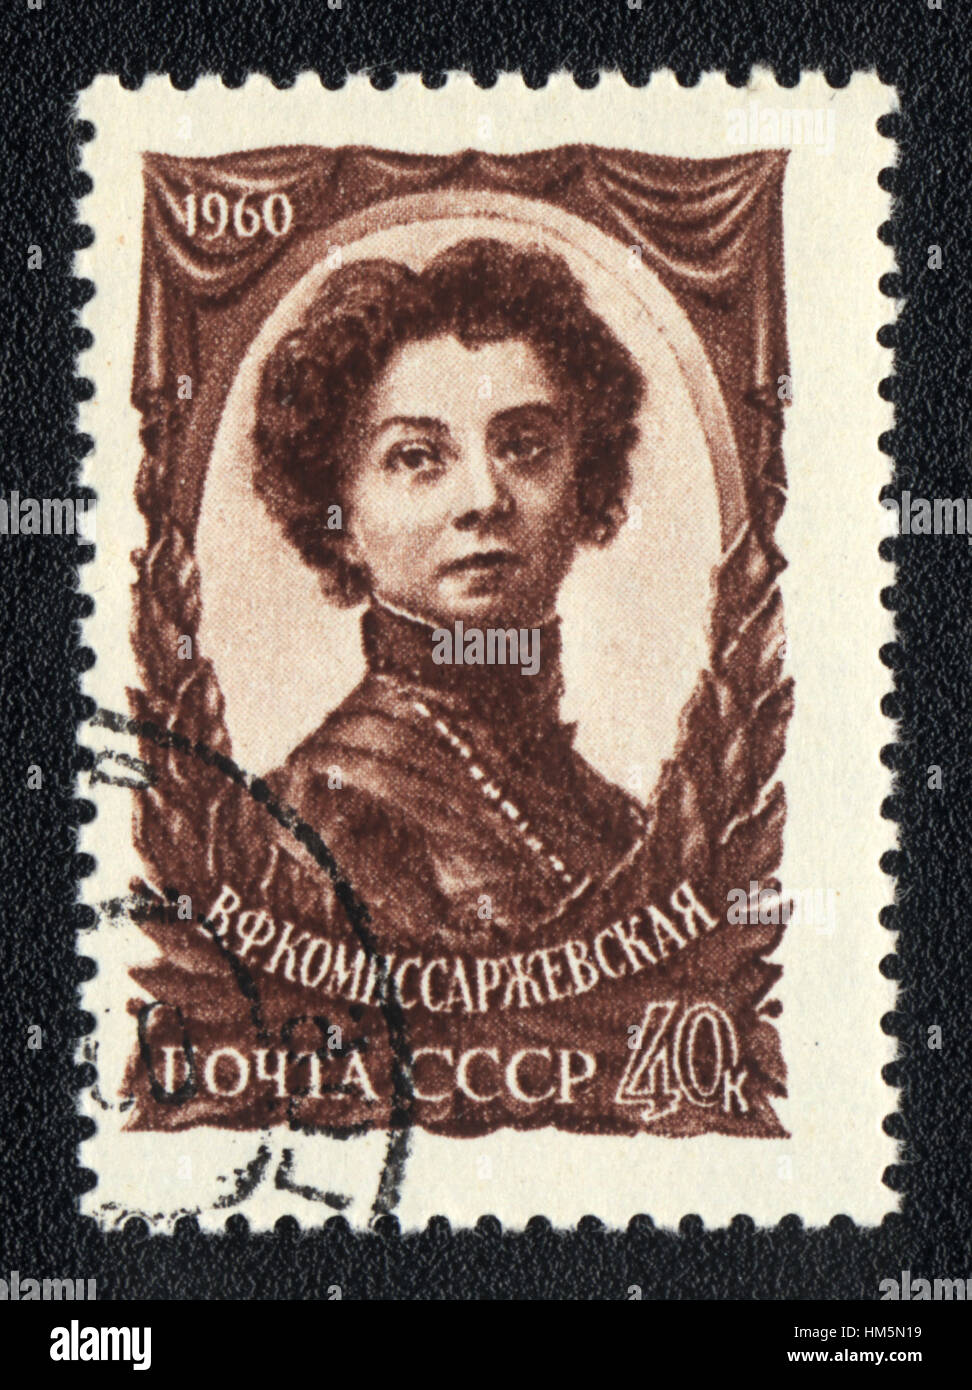 Actress Philately Stamp Stock s & Actress Philately Stamp Stock